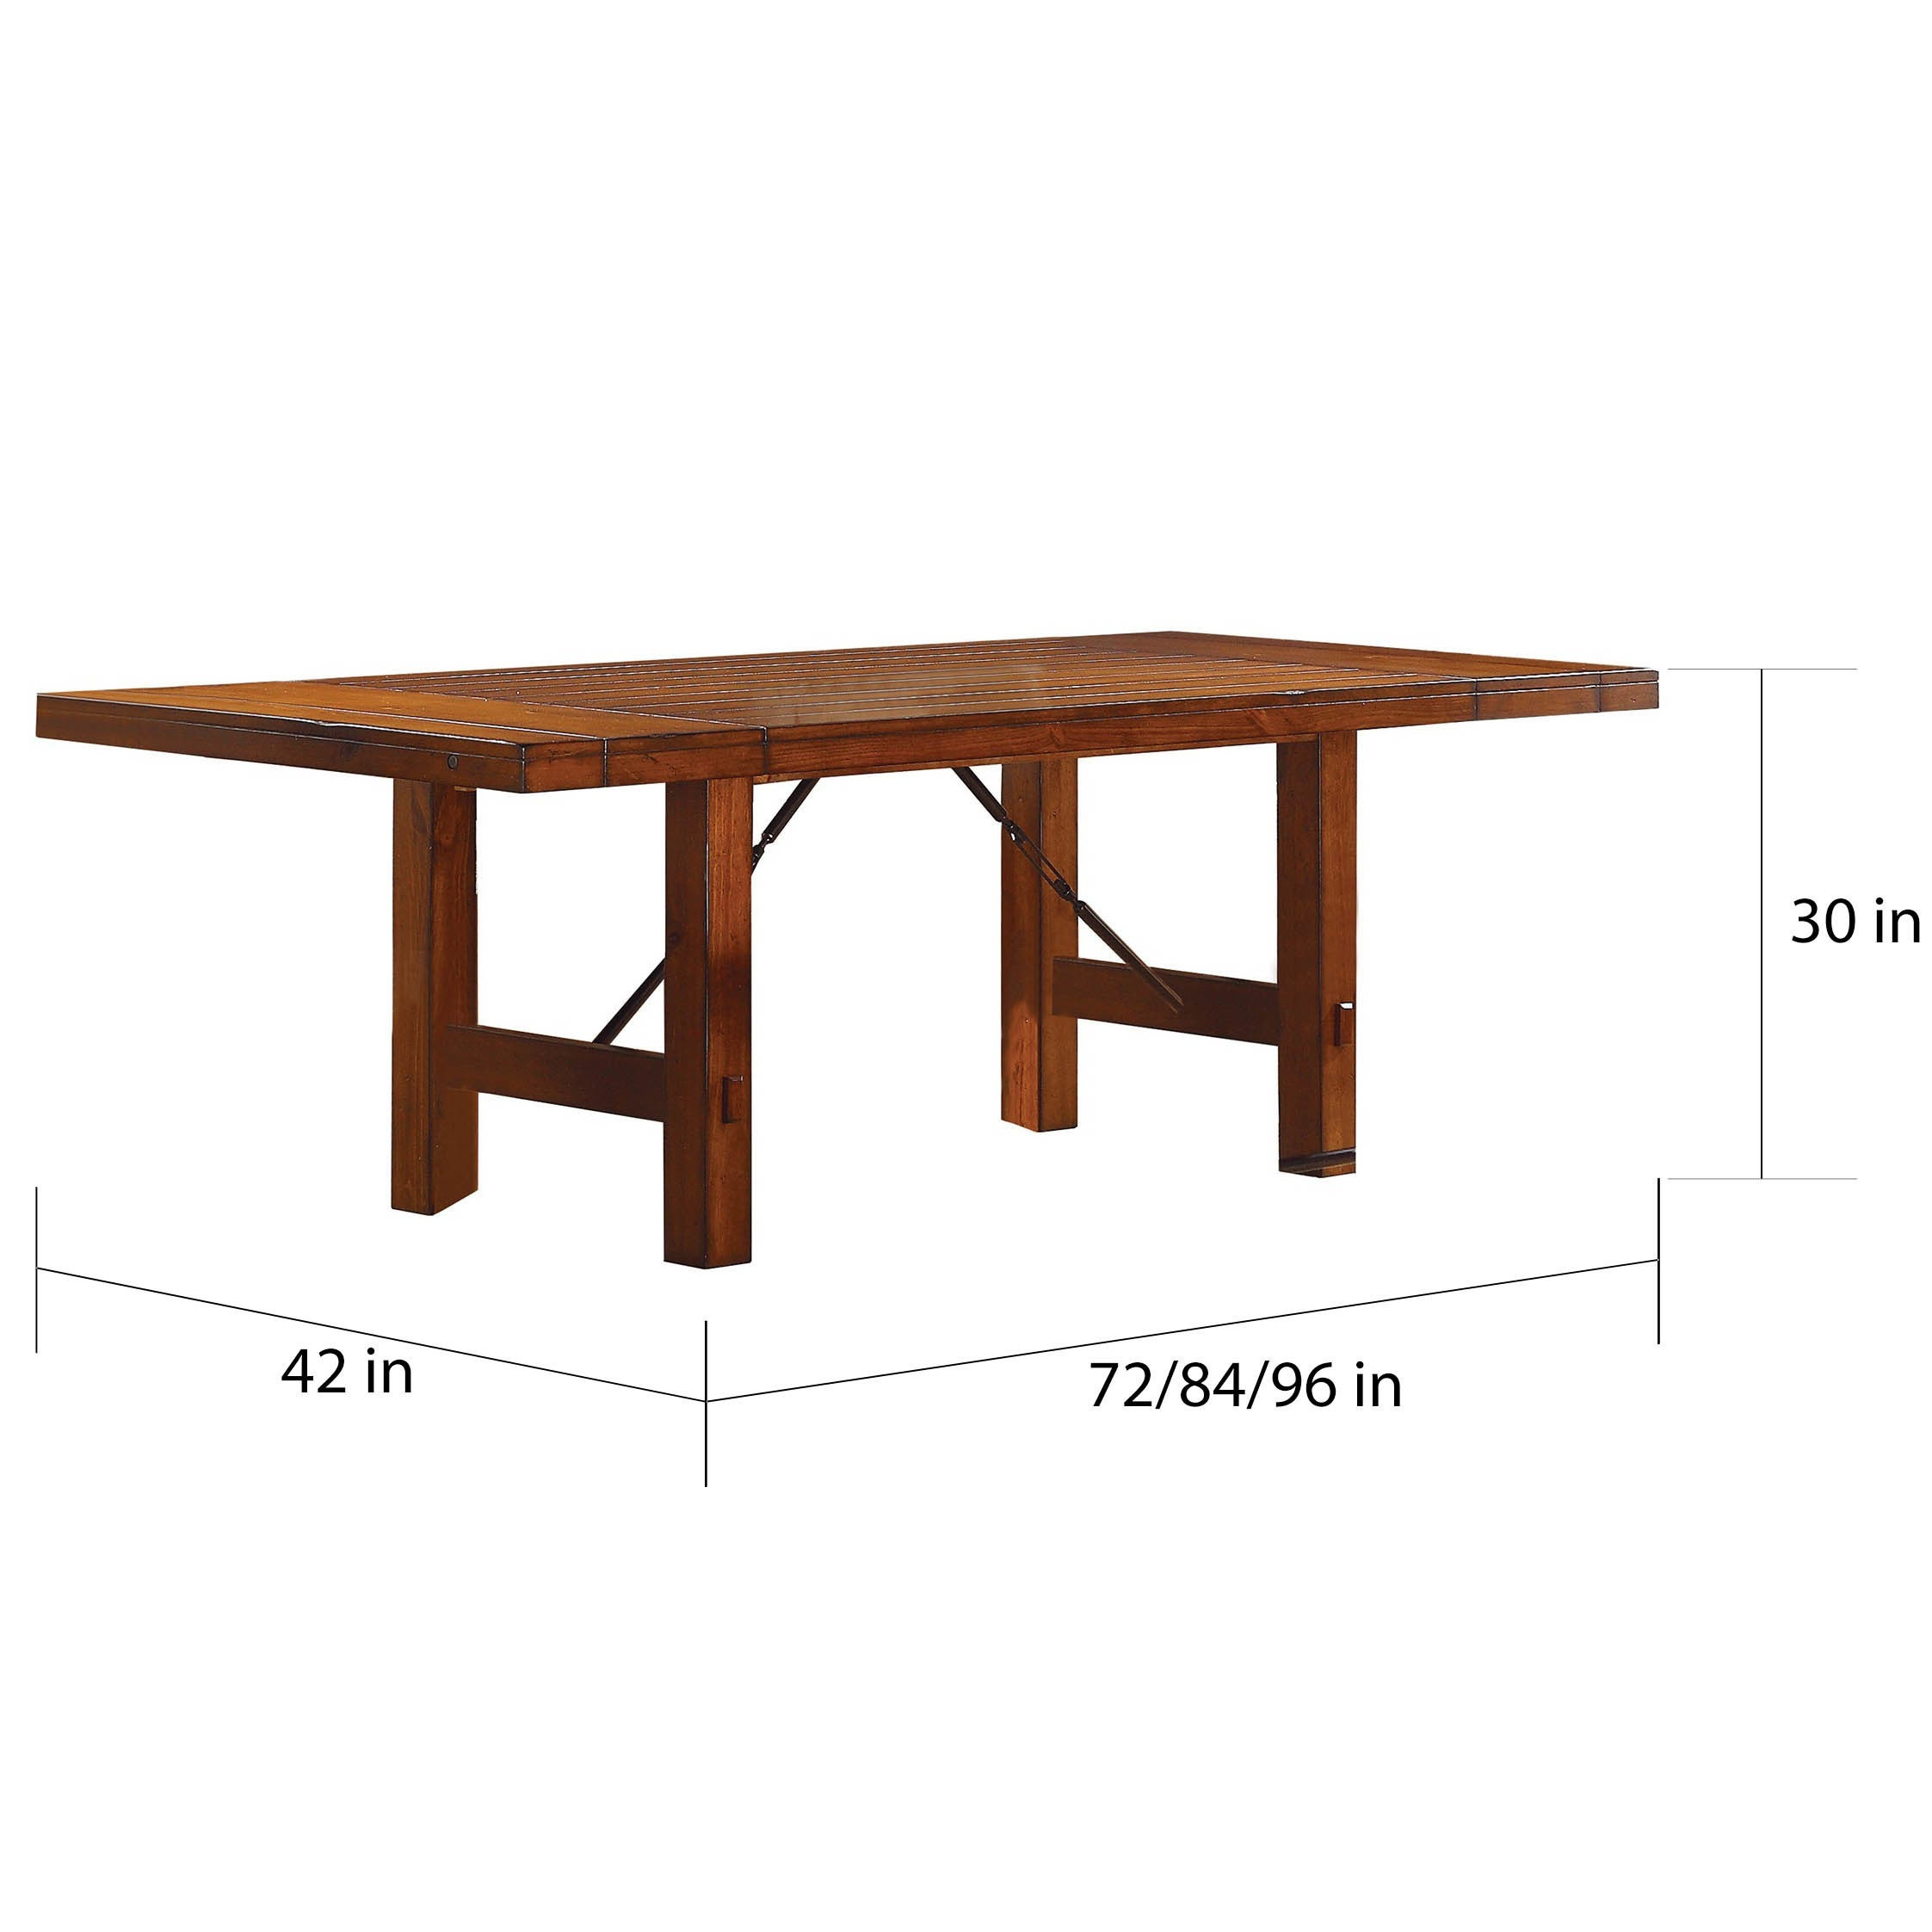 Swindon Rustic Oak Turnbuckle Extending Dining Table by iNSPIRE Q Classic -  Free Shipping Today - Overstock.com - 16605799